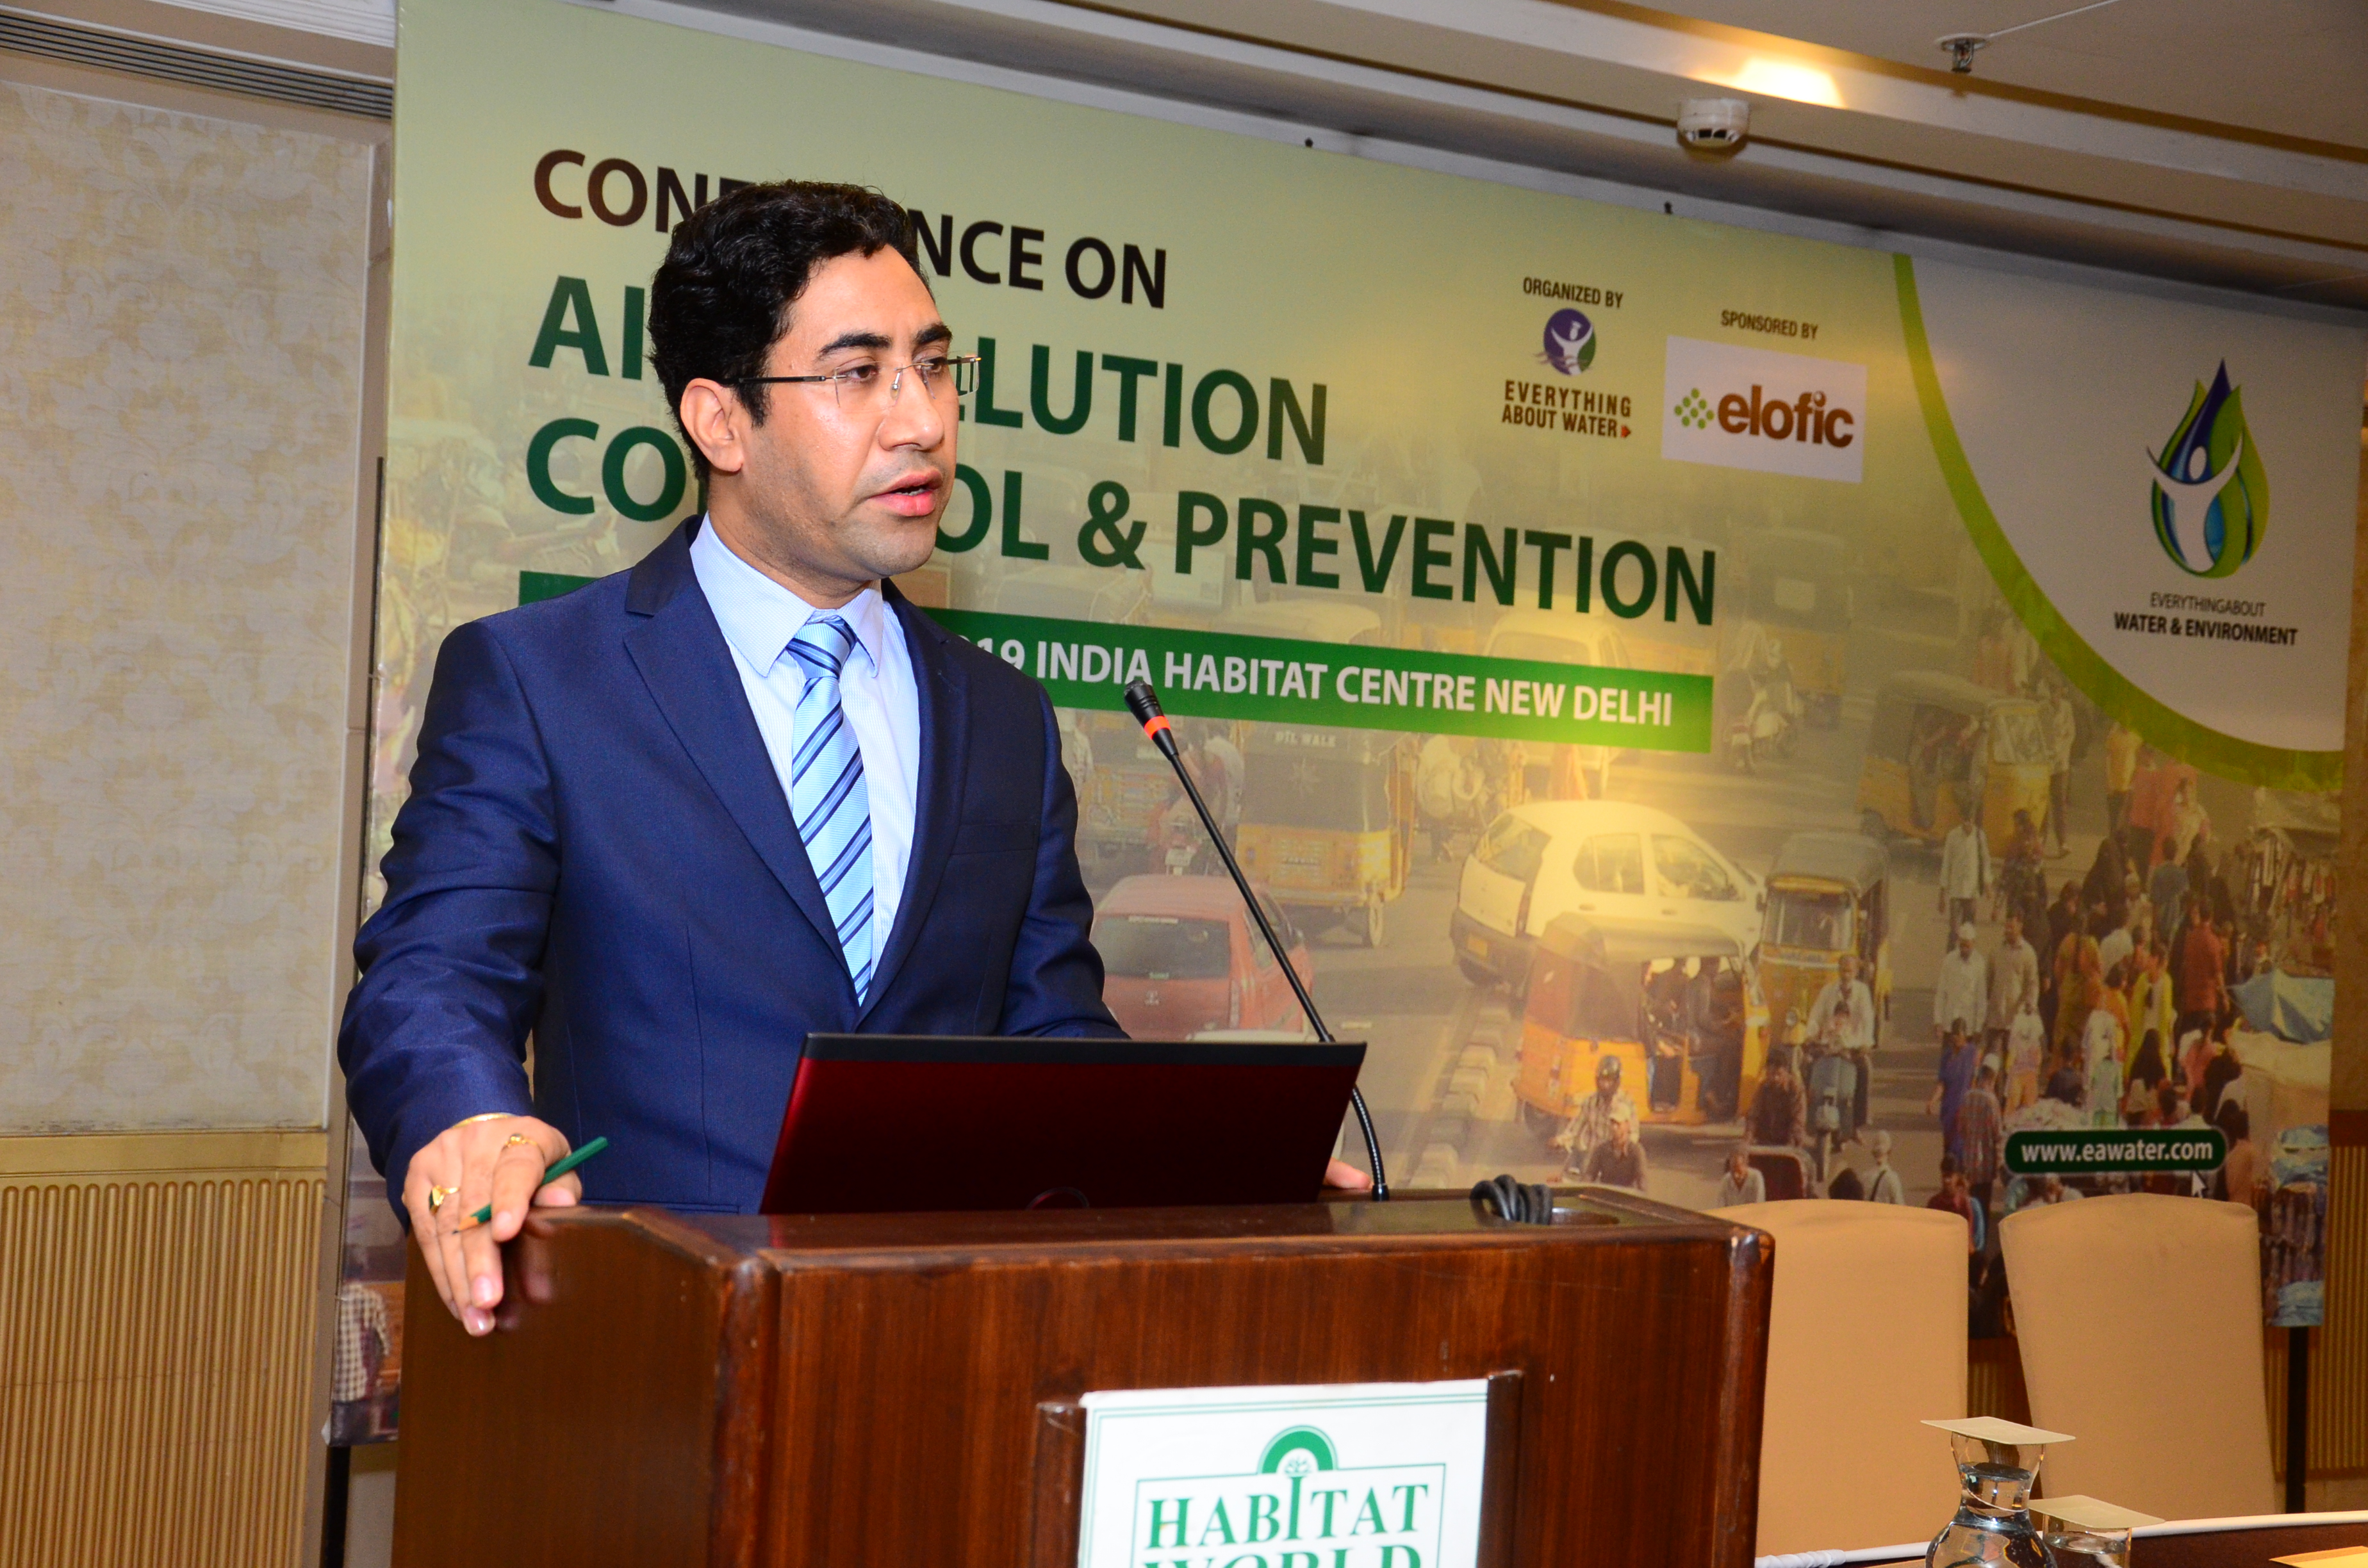 Conference on Air Pollution Control & Prevention